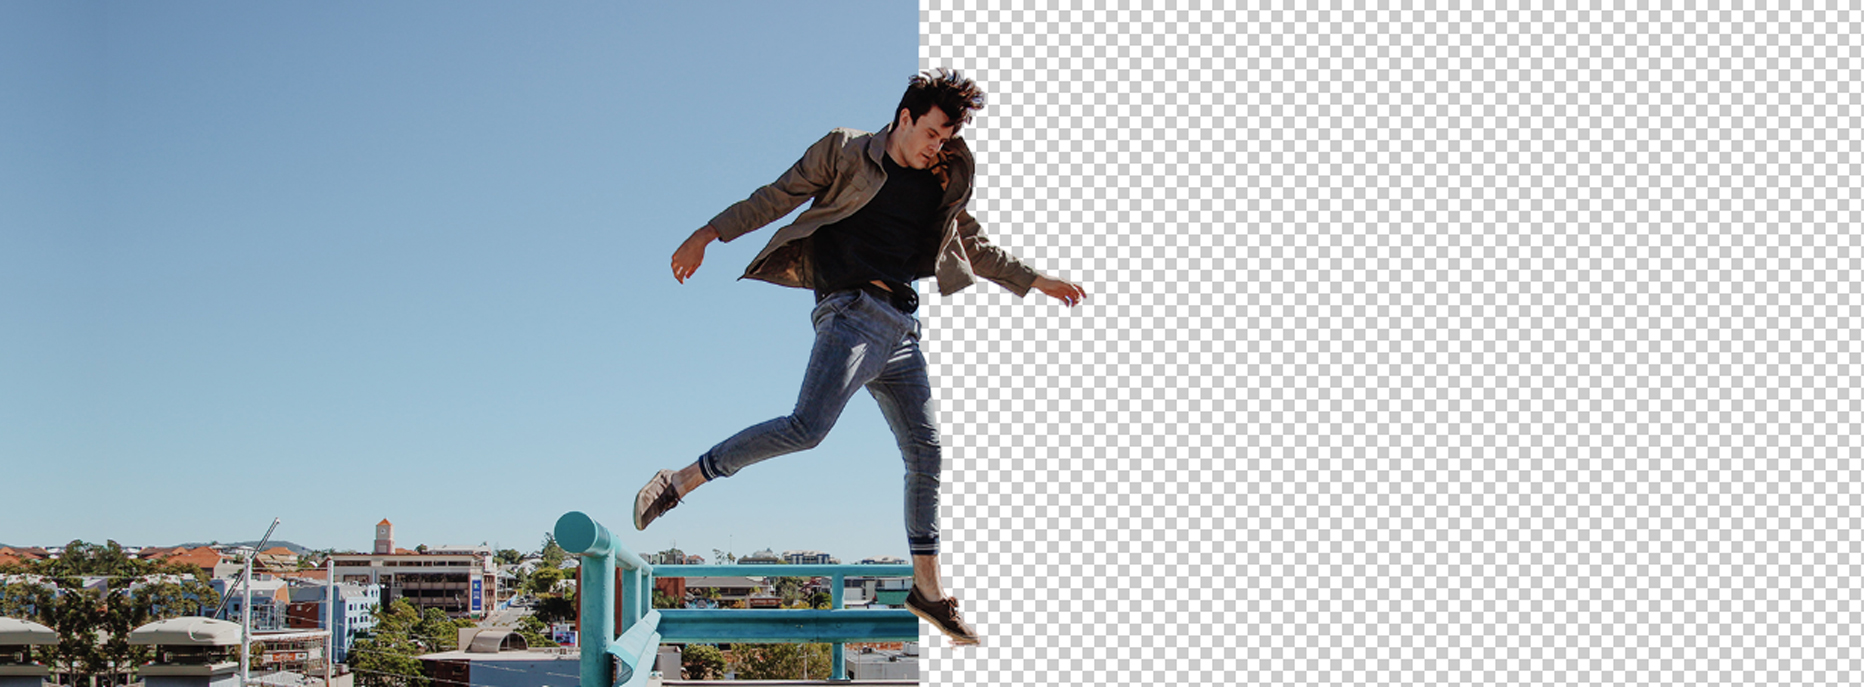 background removal software